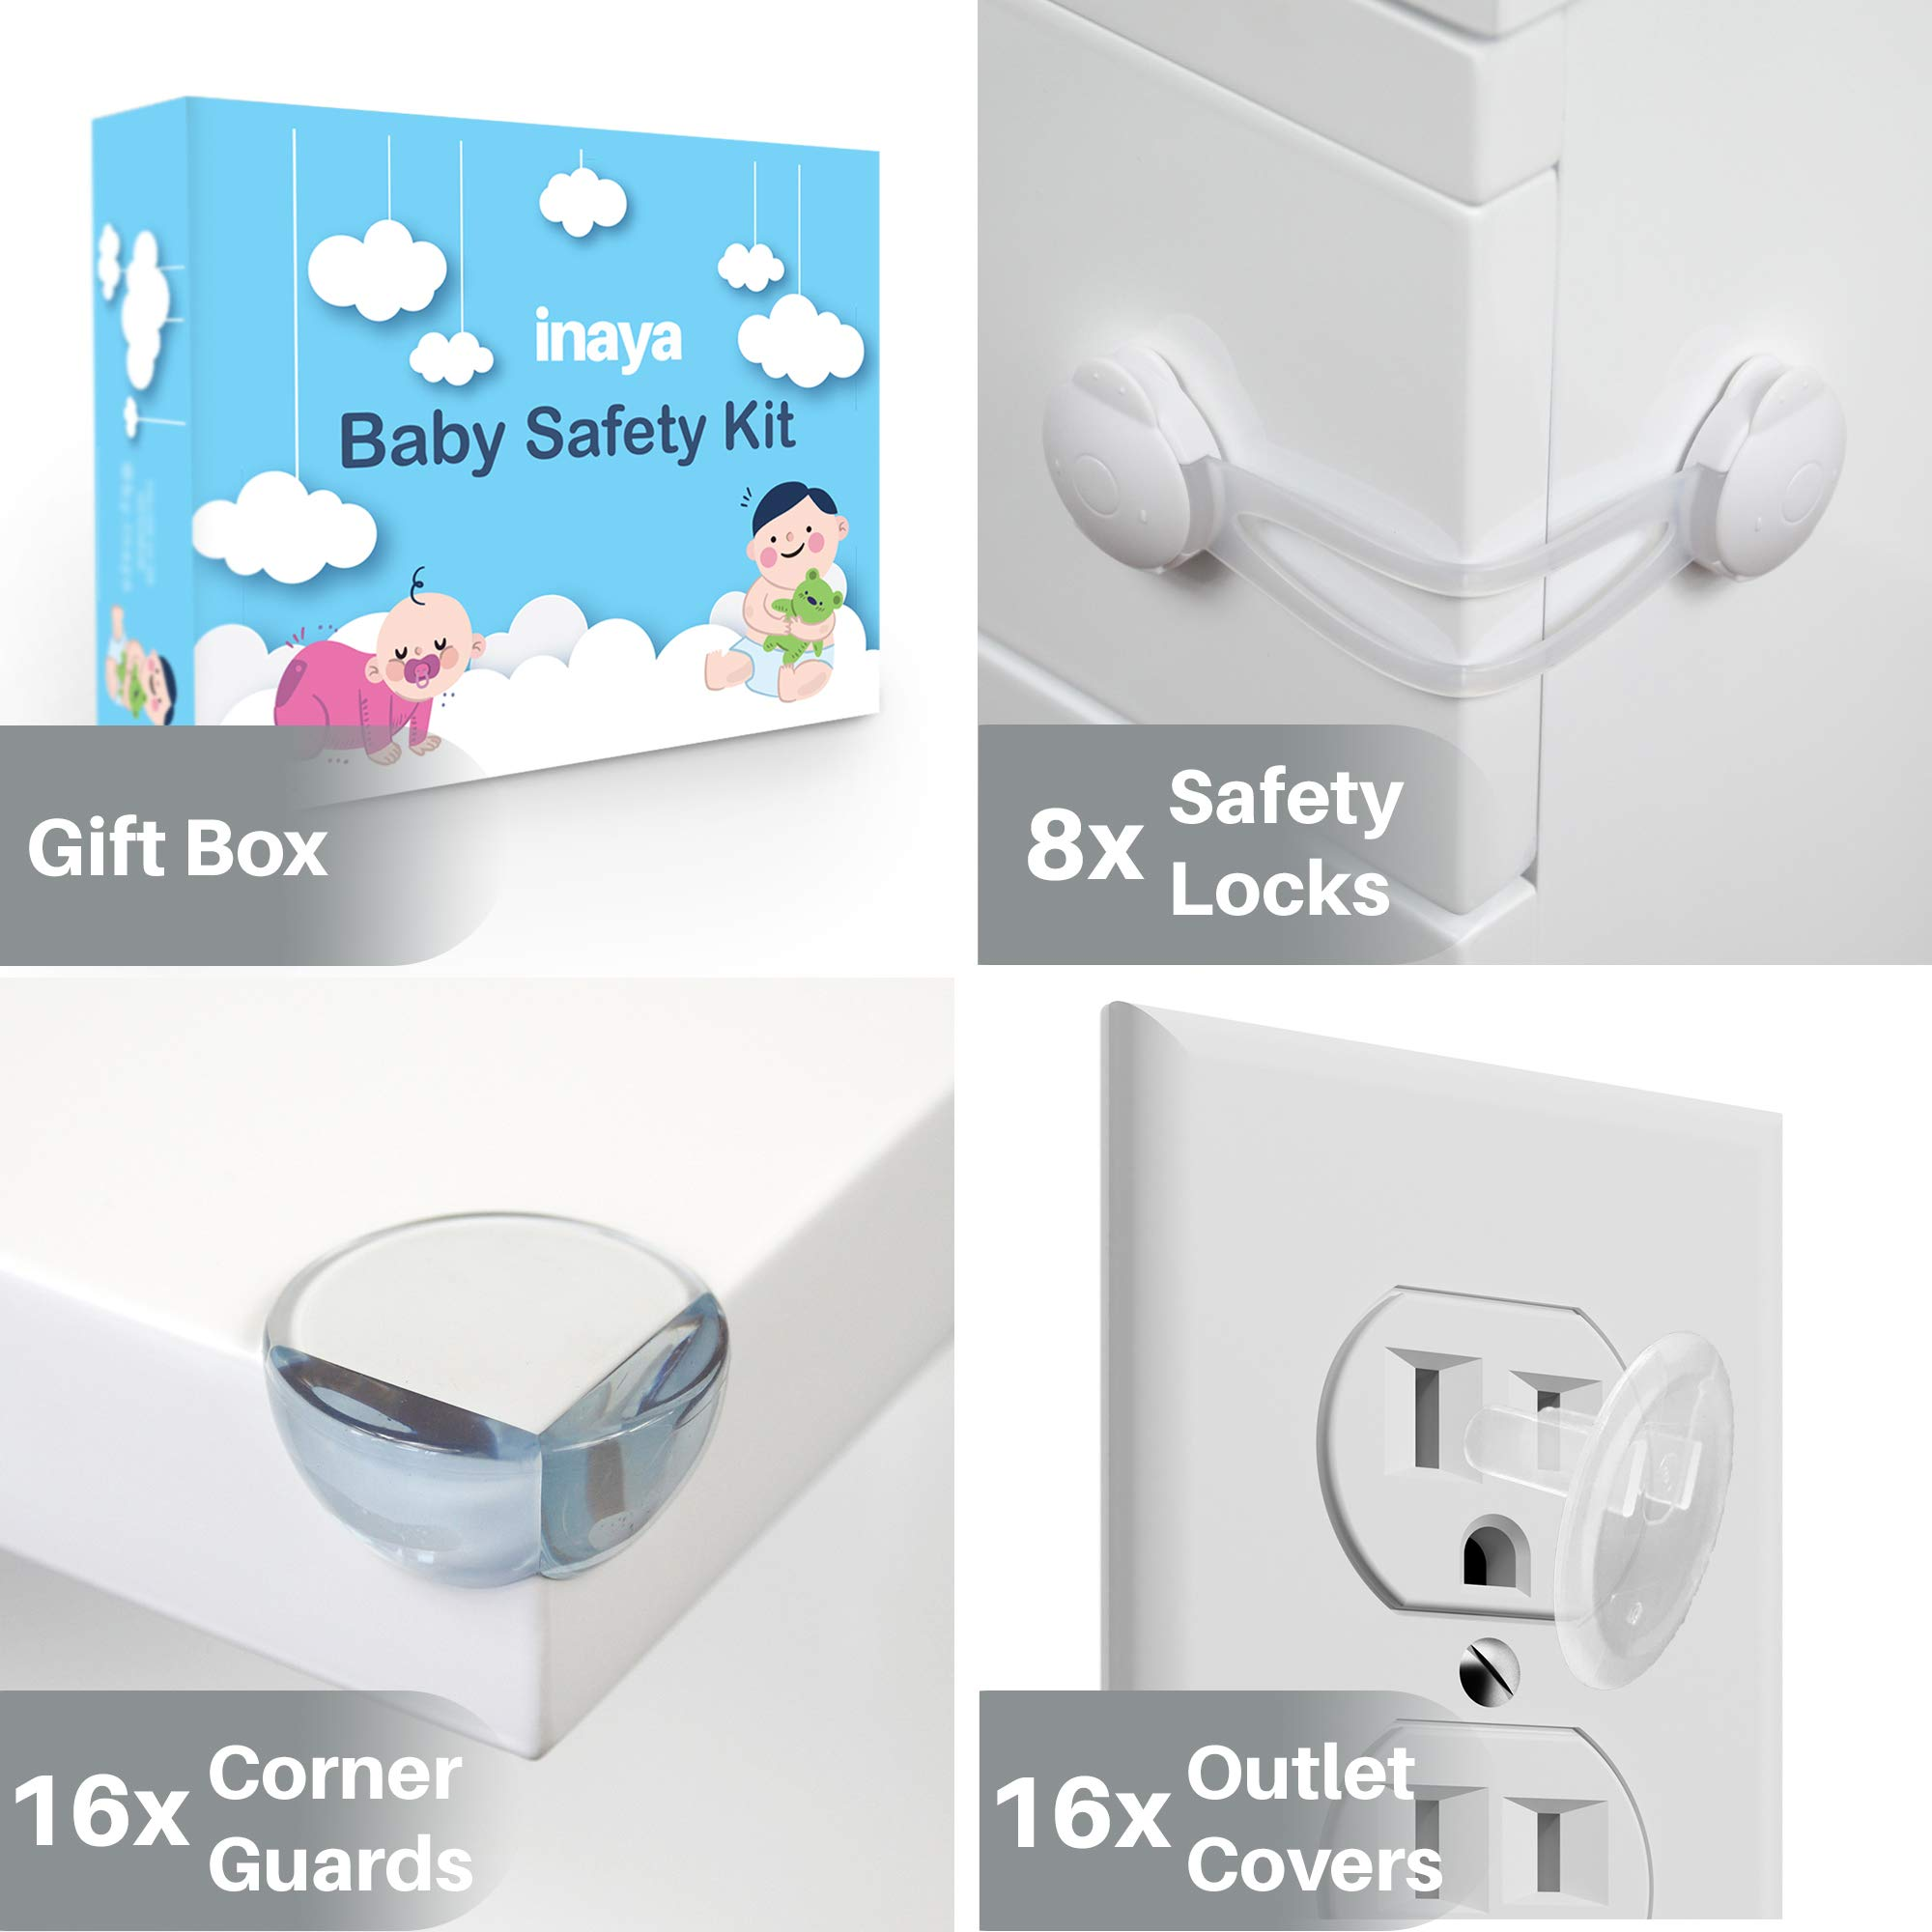 Complete Baby Proofing Kit - 8 Safety Locks, 16 Corner Guards, 16 Outlet Covers - Accident Proof Devices to Keep Your Child Safe at Home - Inaya - Great Gift for Baby Shower & Baby Registry by Inaya (Image #2)